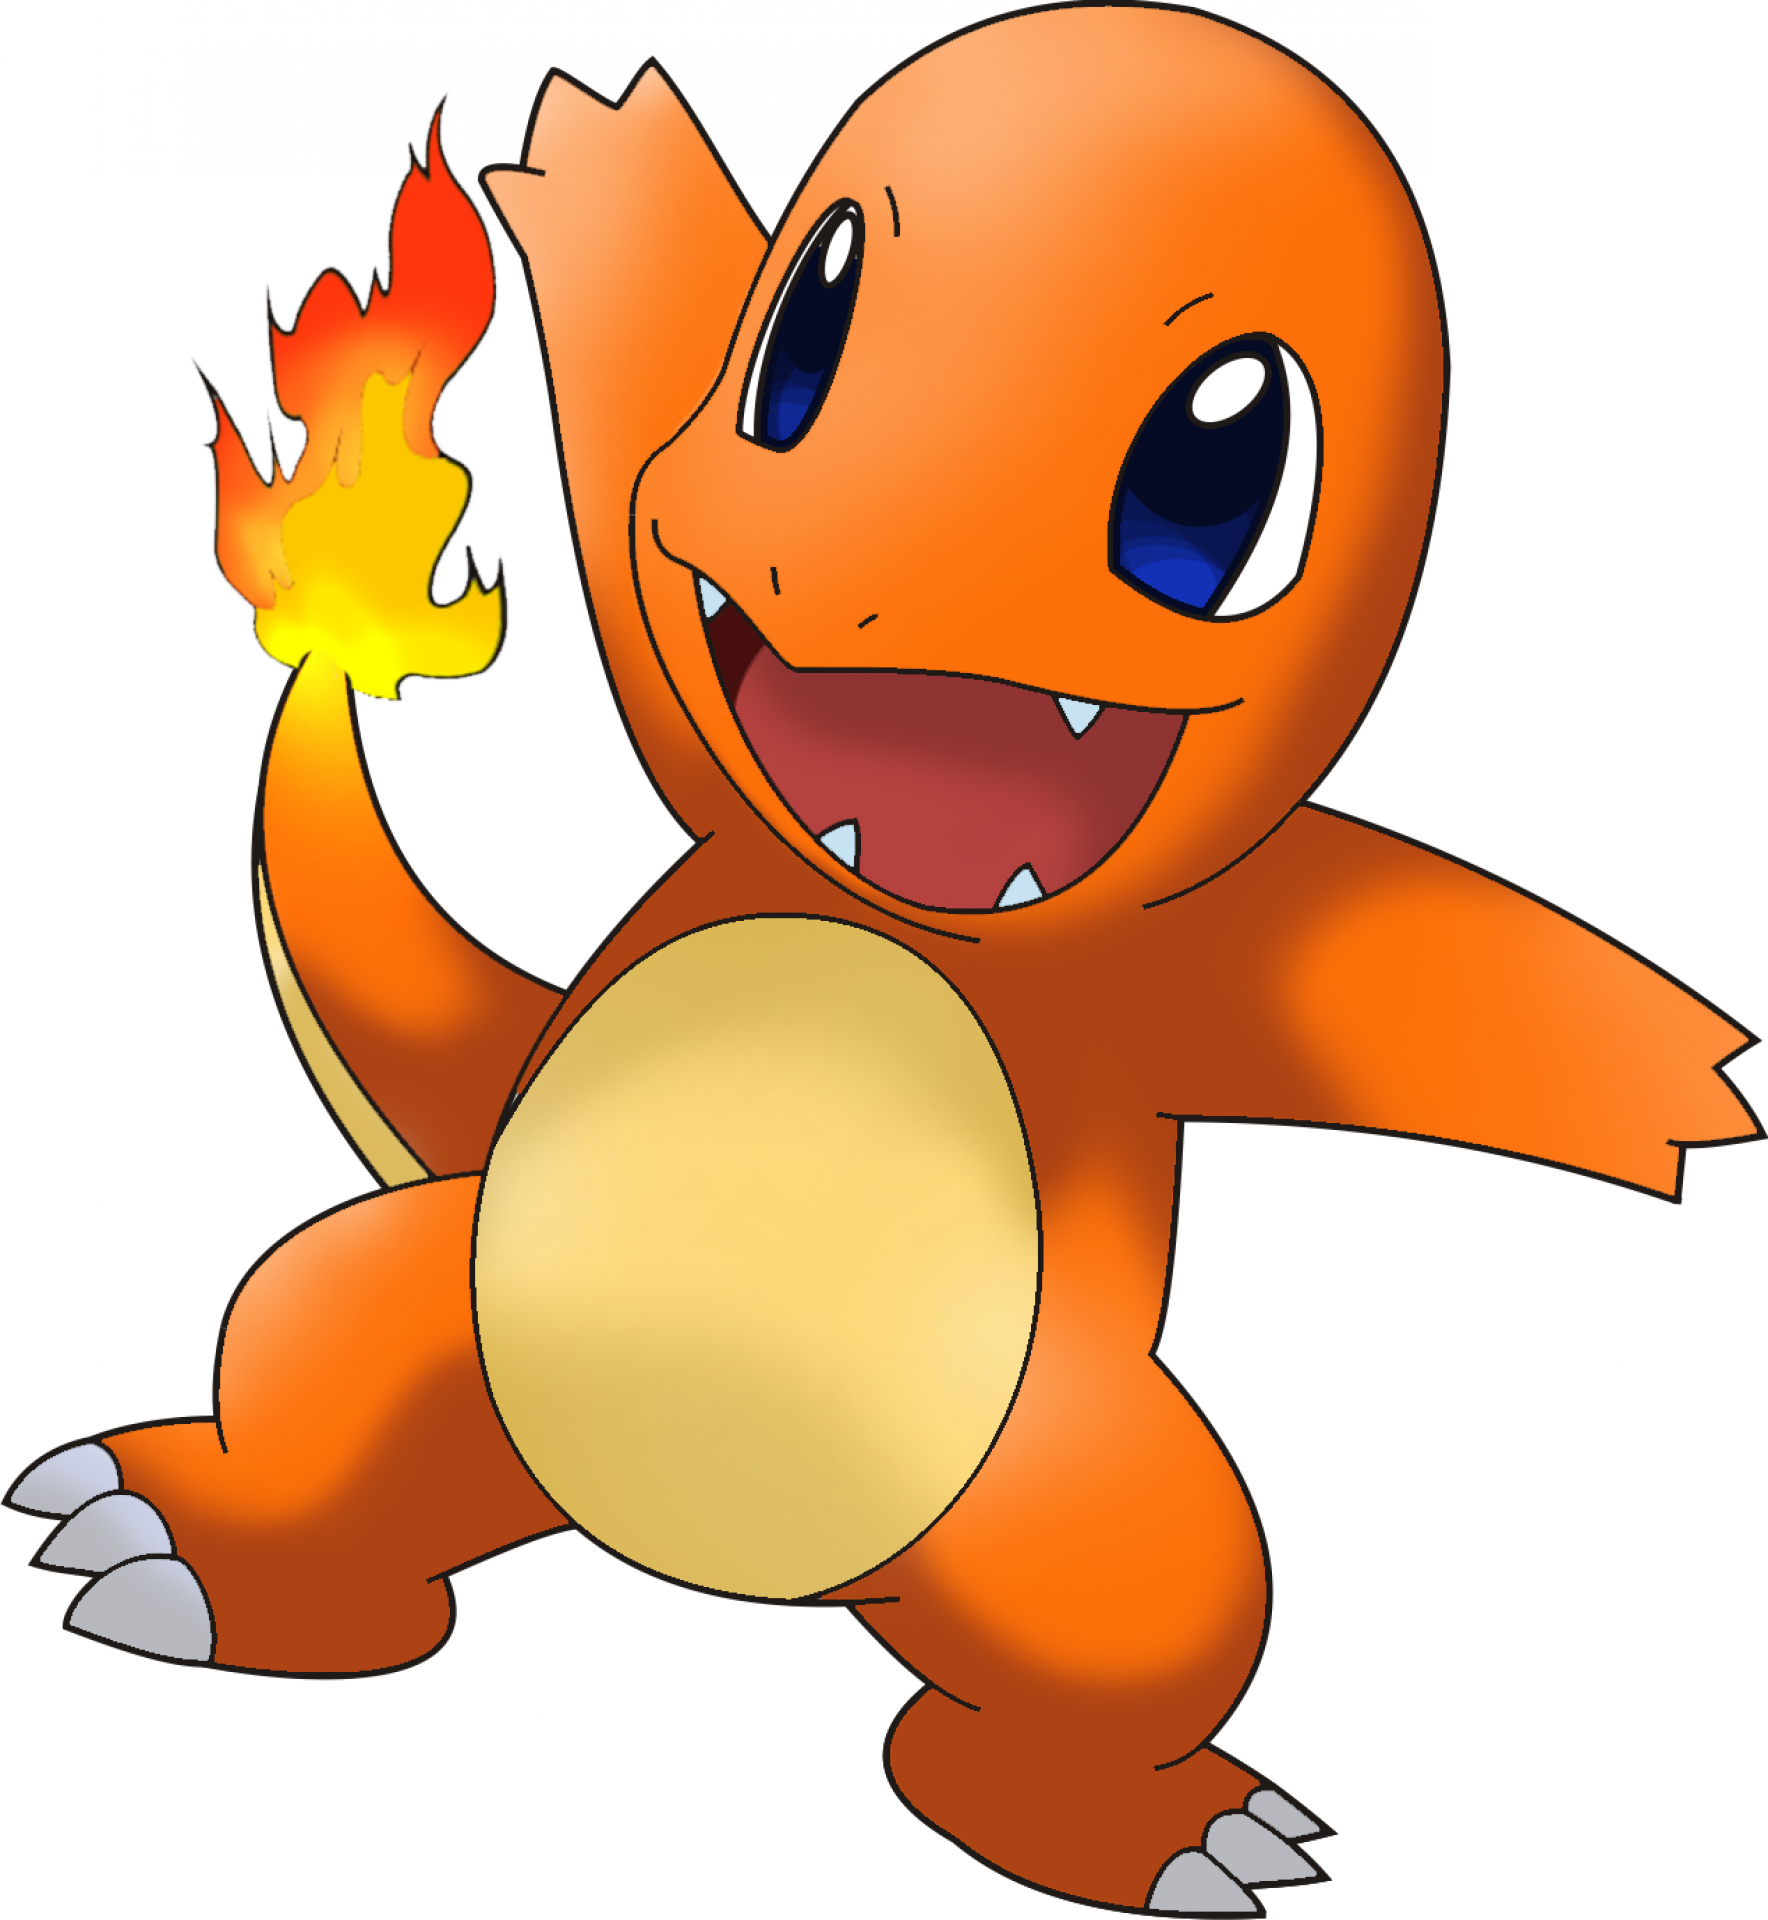 Download Free Png Images Pokemon image #18187